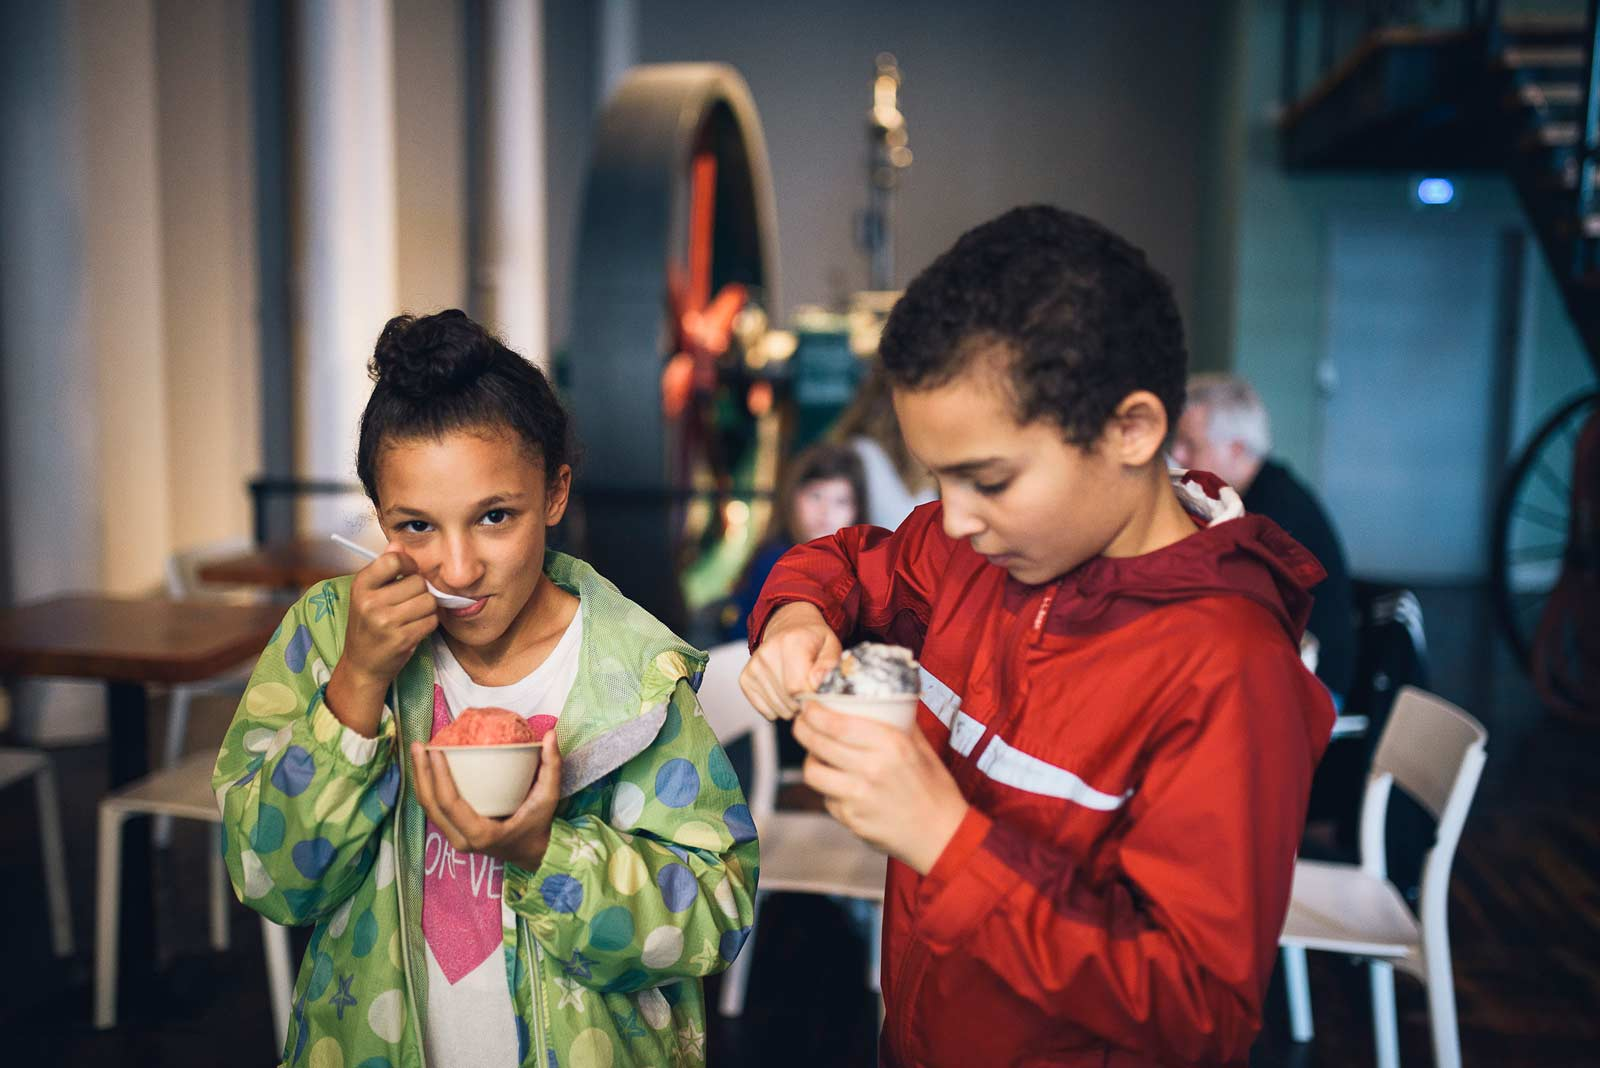 Siblings Maya and Balam Serrano dive into treats from Sweet cream Dairy at the Pepperell Mill.